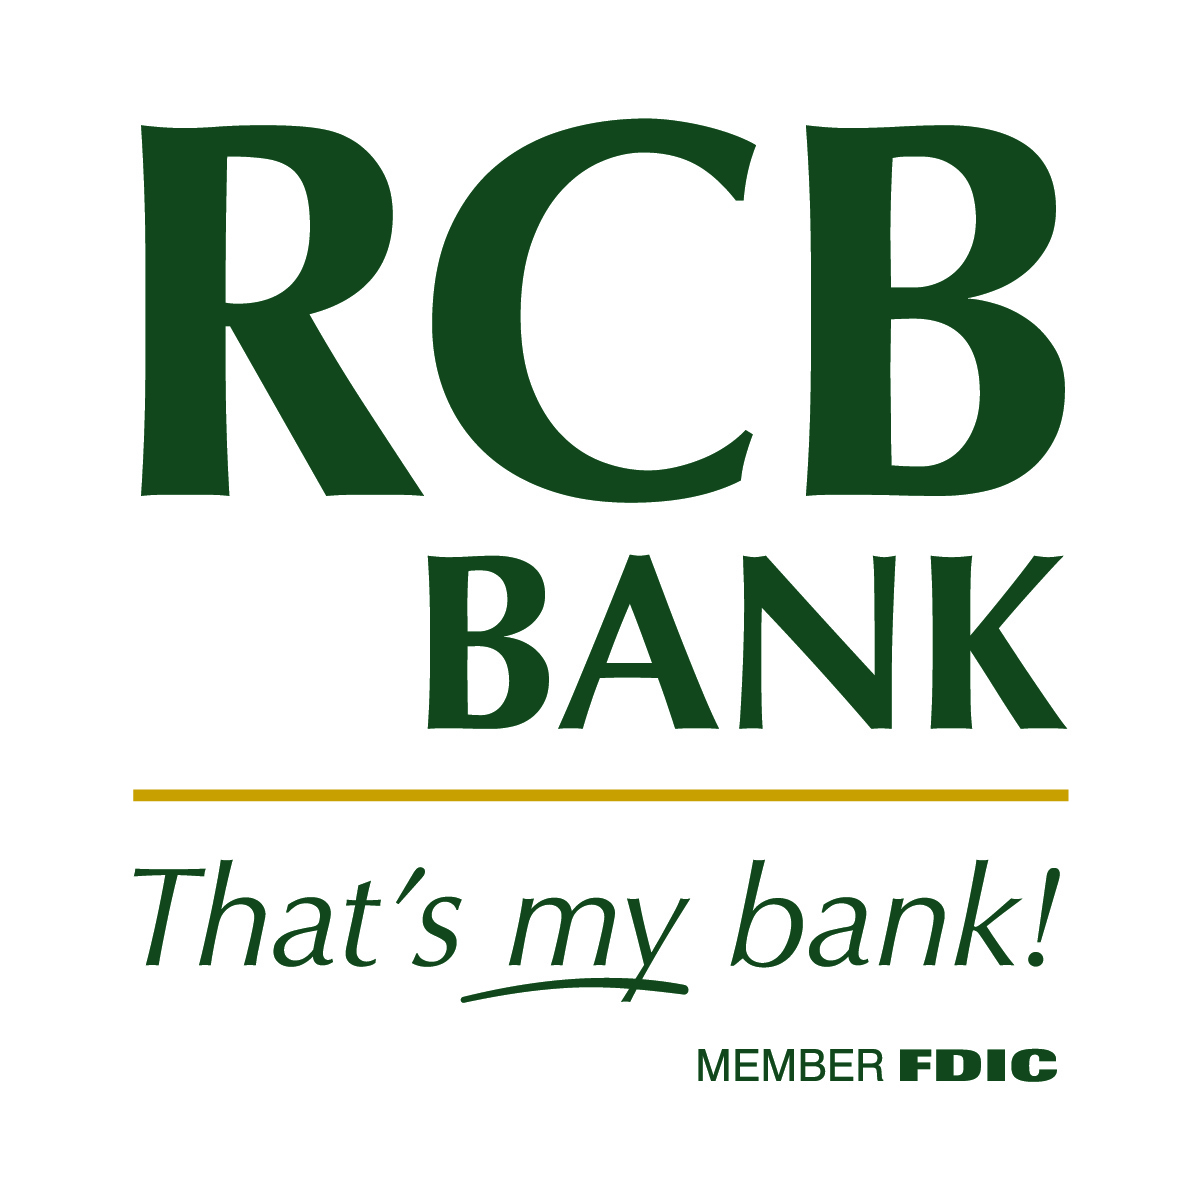 RCB-Bank-Logo_Color-FDIC.jpg